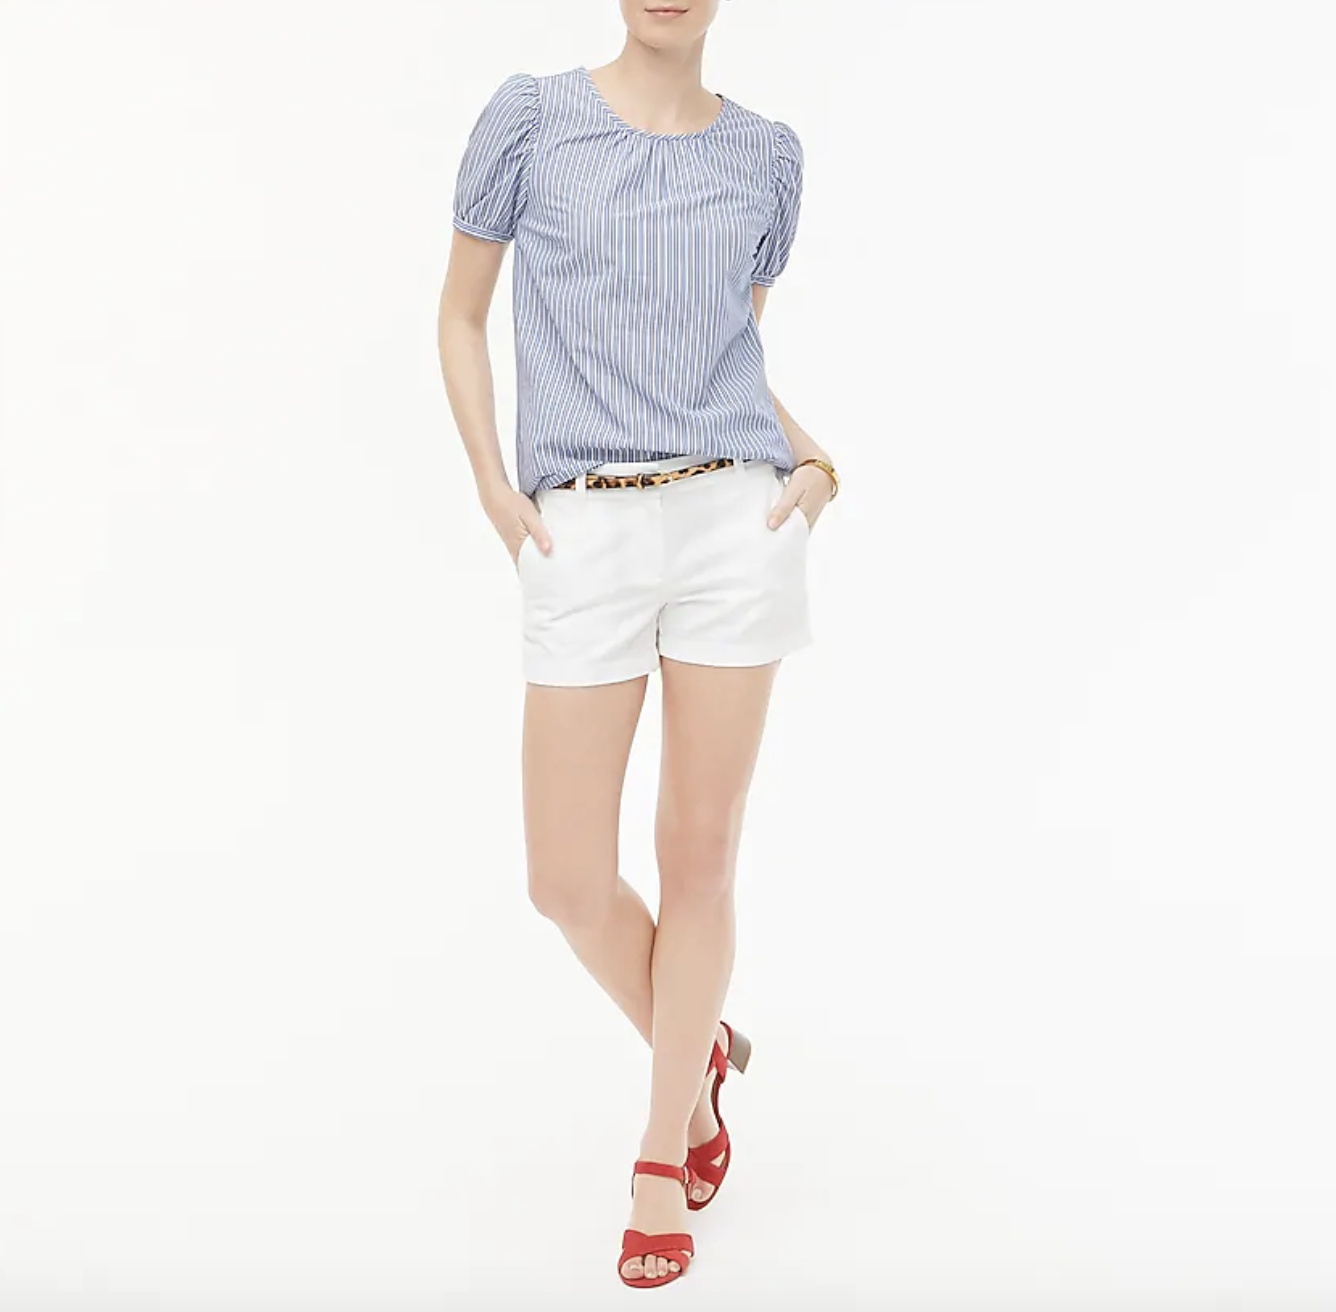 A model wearing plain cotton white shorts, which have a 3.5-inch inseam, with a leopard print belt